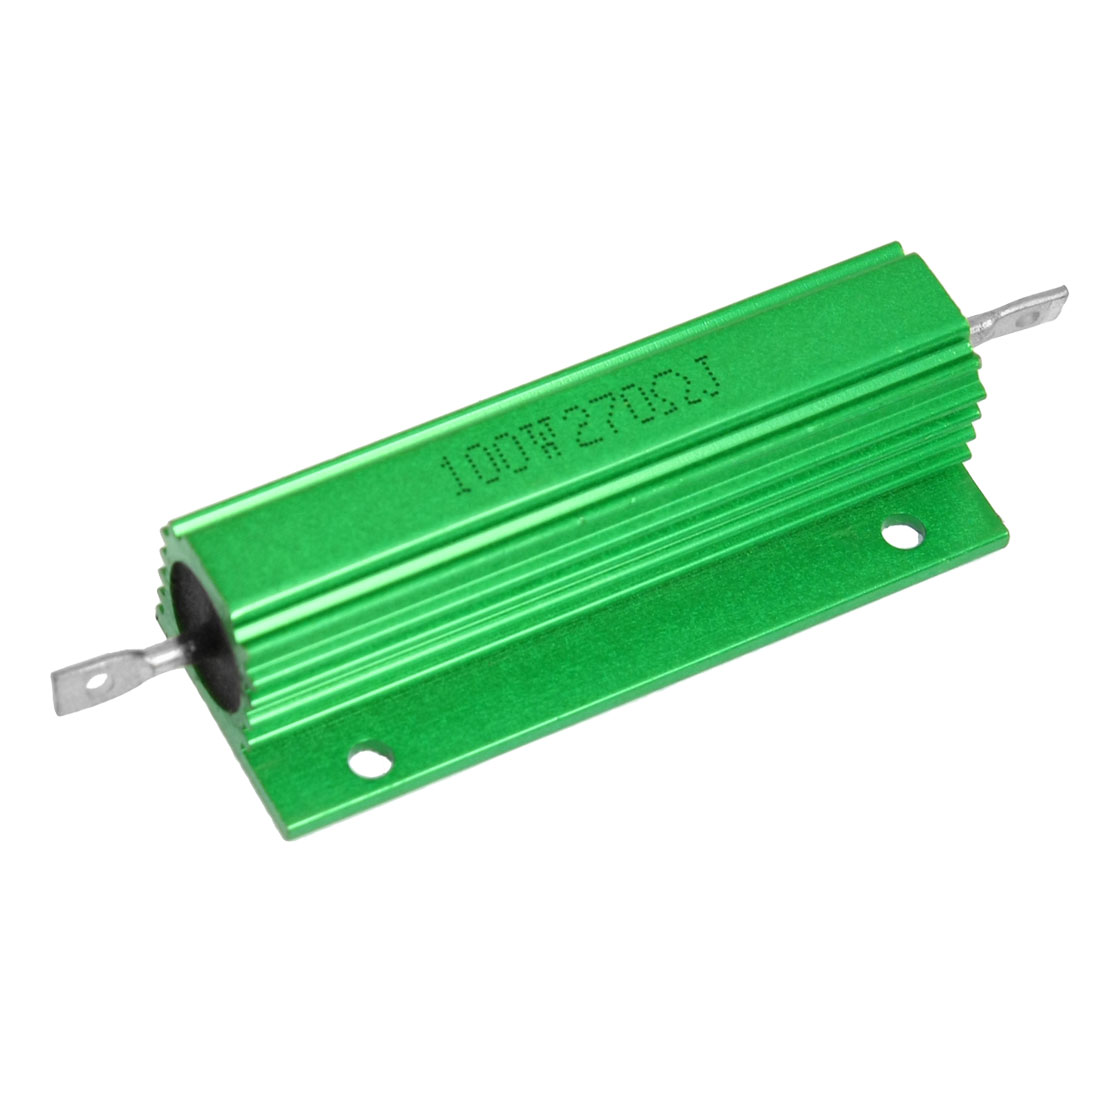 100W 270 Ohm Green Aluminum Case Wirewound Housed Resistor